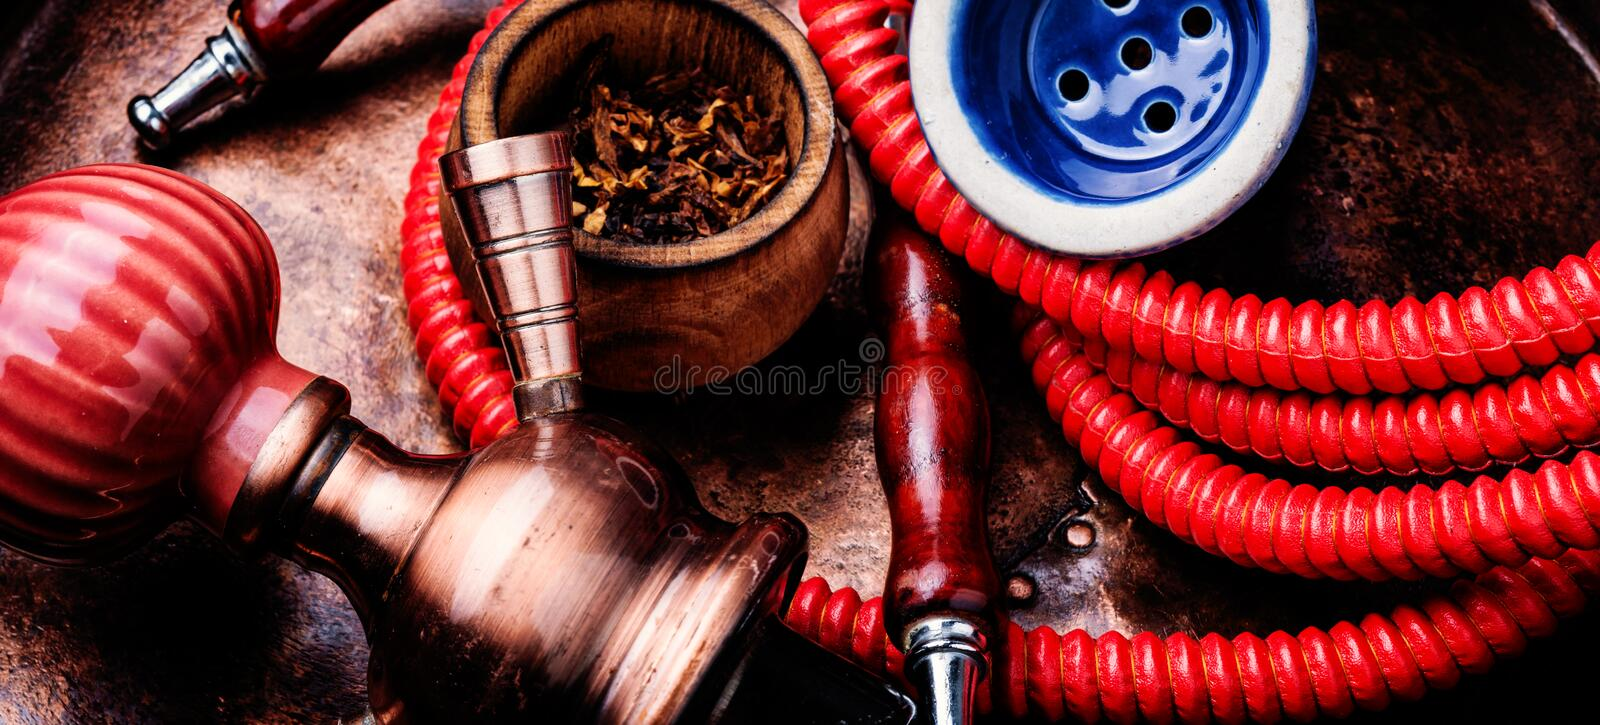 Hookah Stock Images - Download 8,042 Royalty Free Photos